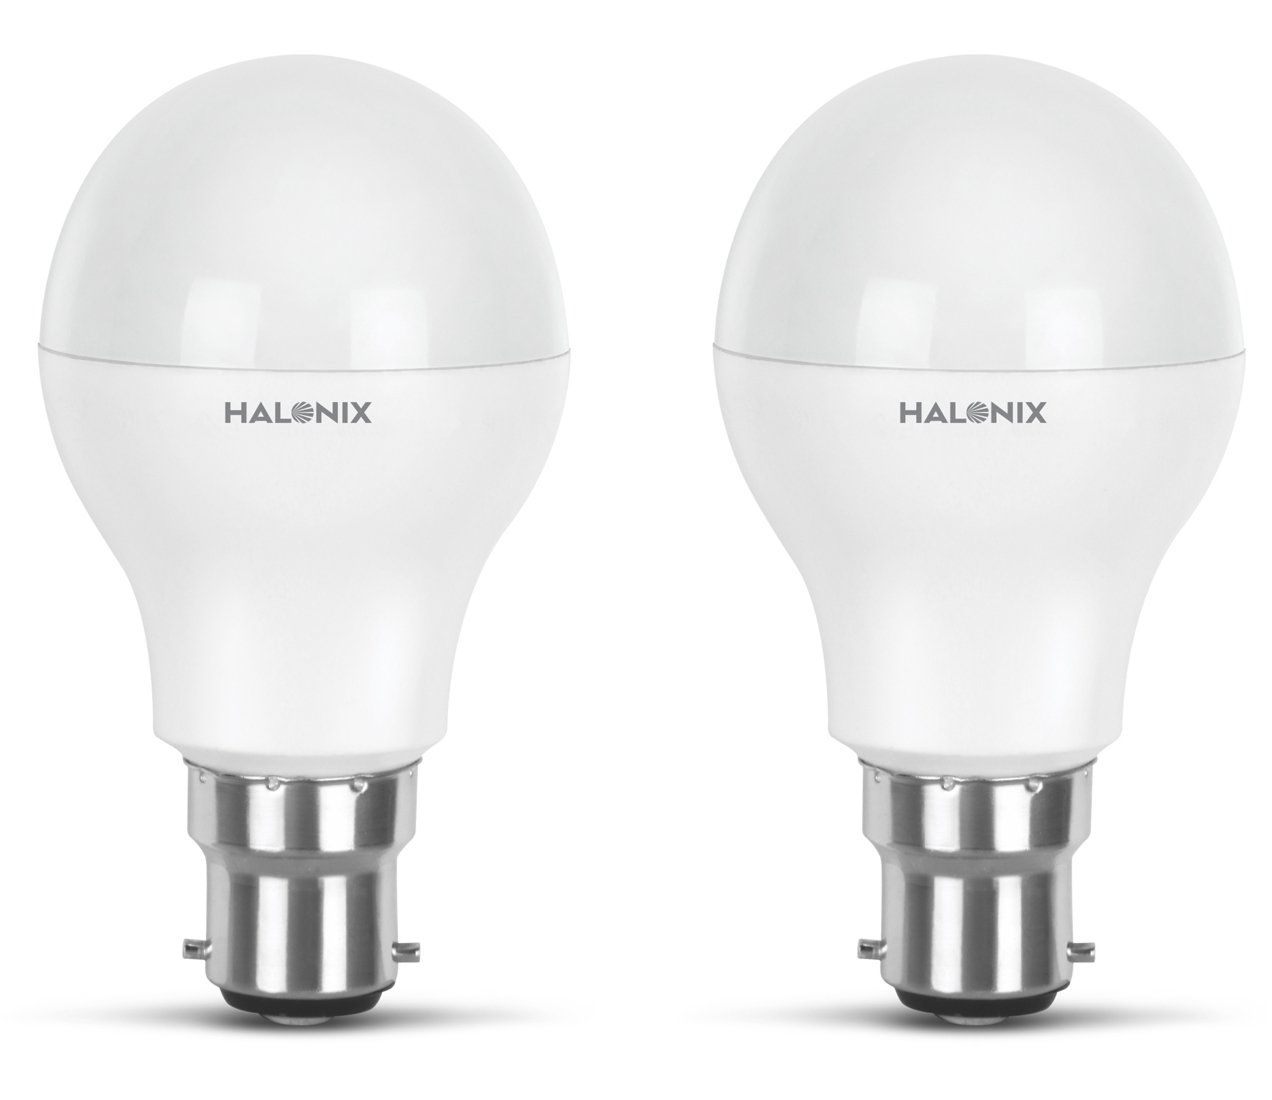 Buy Halonix Photon Plus Base B22 9-Watt LED Bulb (Pack of 2 Cool Day Light) Online at Low Prices in India - Amazon.in  sc 1 st  Amazon India & Buy Halonix Photon Plus Base B22 9-Watt LED Bulb (Pack of 2 Cool ... azcodes.com